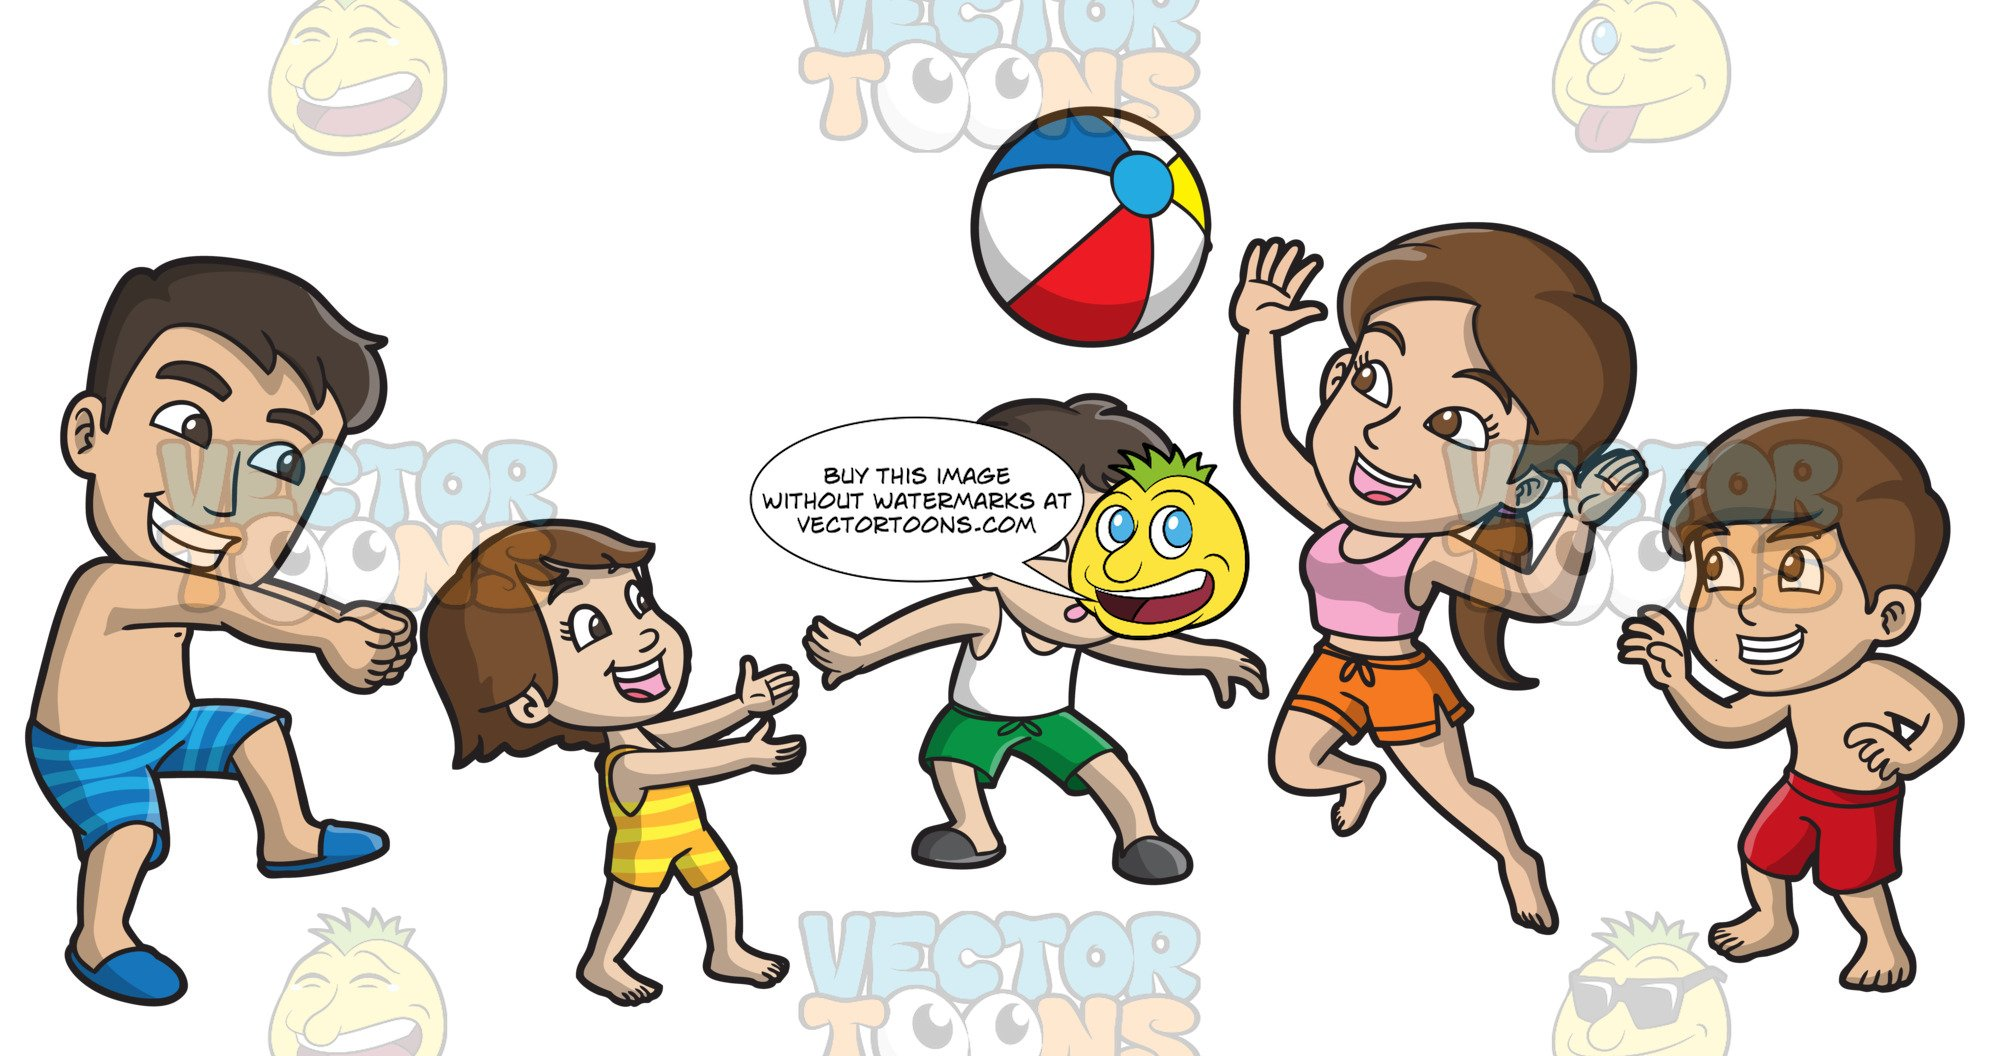 Working together happy family clipart banner free stock A Happy Family Playing With A Beach Ball banner free stock